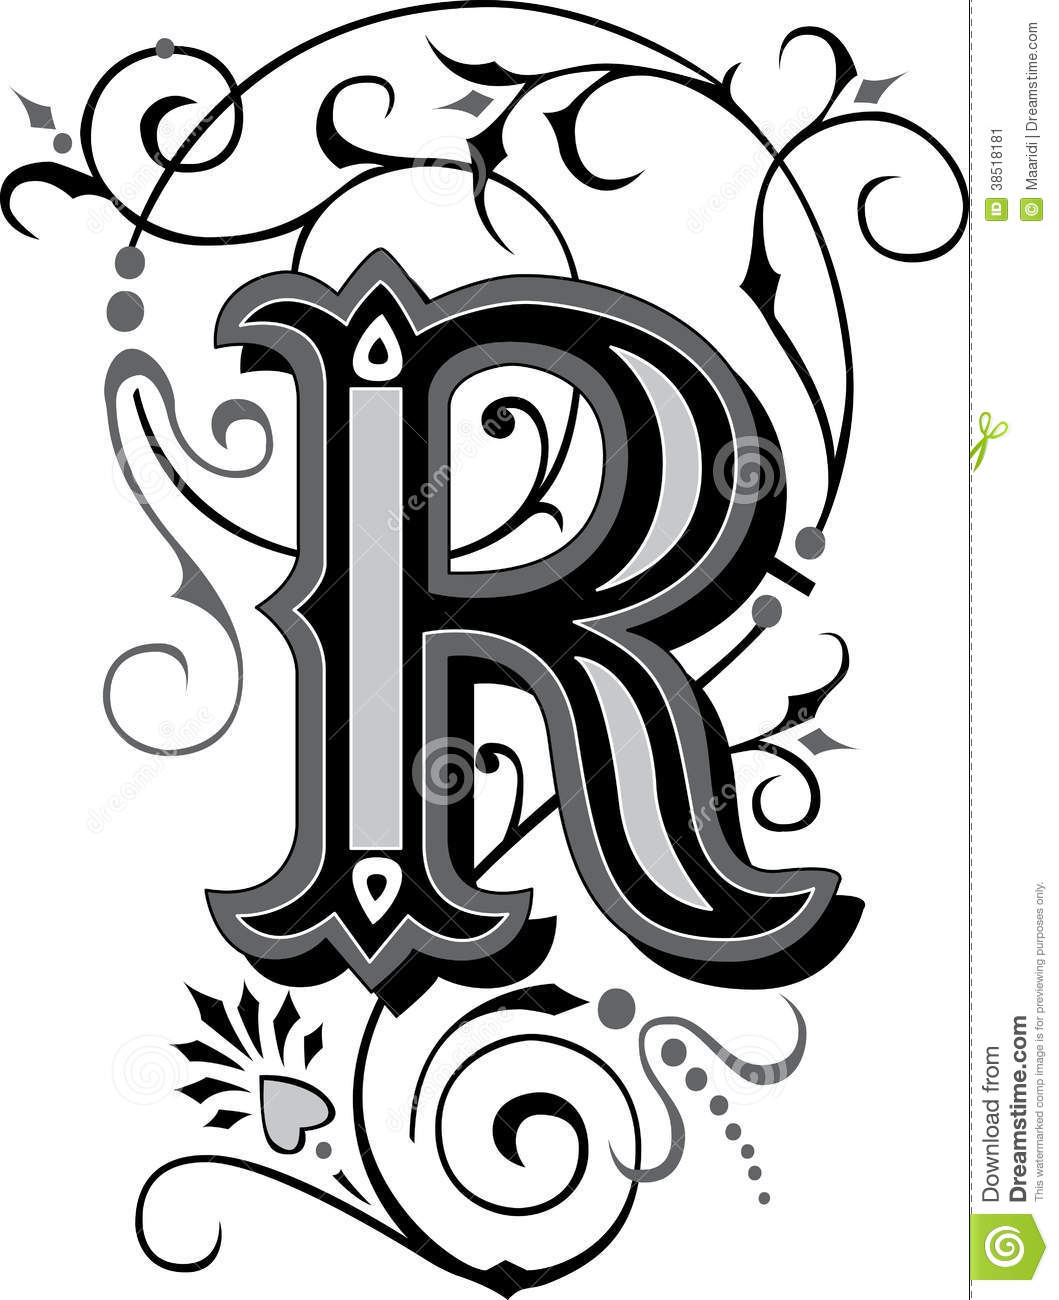 Grayscale Coloring Pages Pinterest Coloring Pages